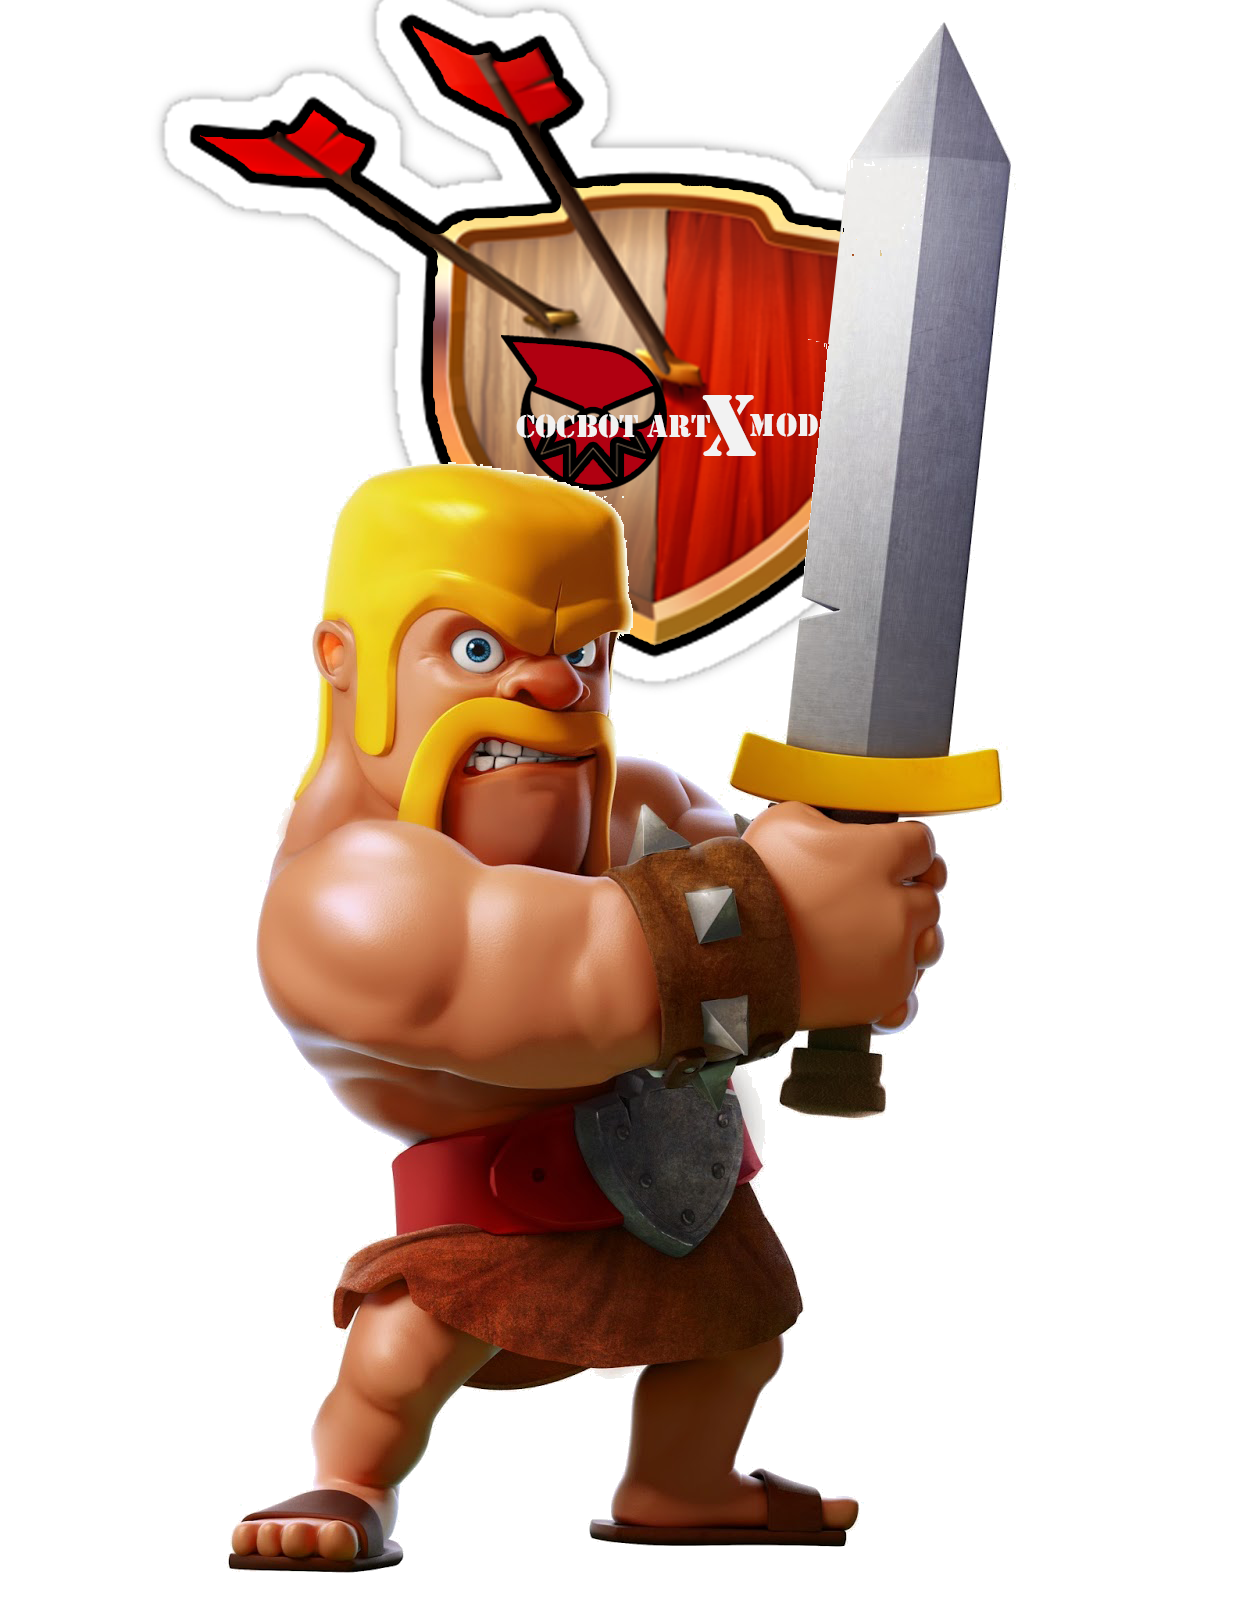 CLASH OF CLANS PICTURES PNG